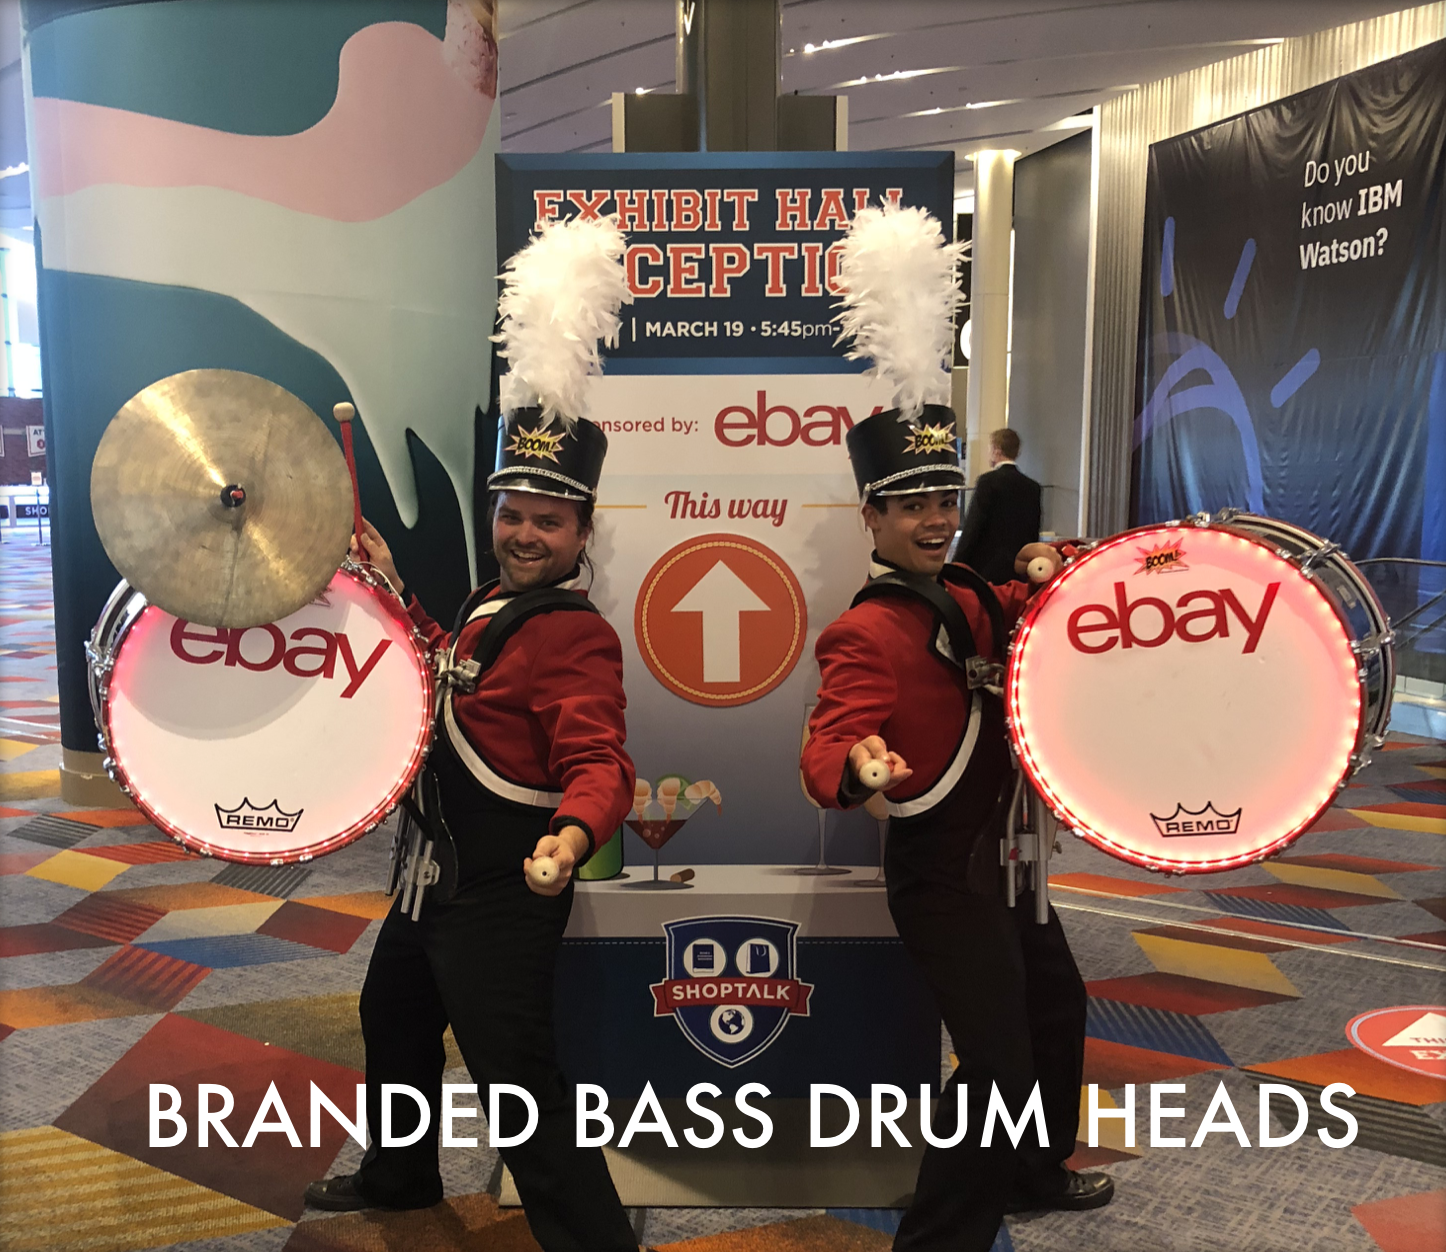 Branded Bass Drum Heads